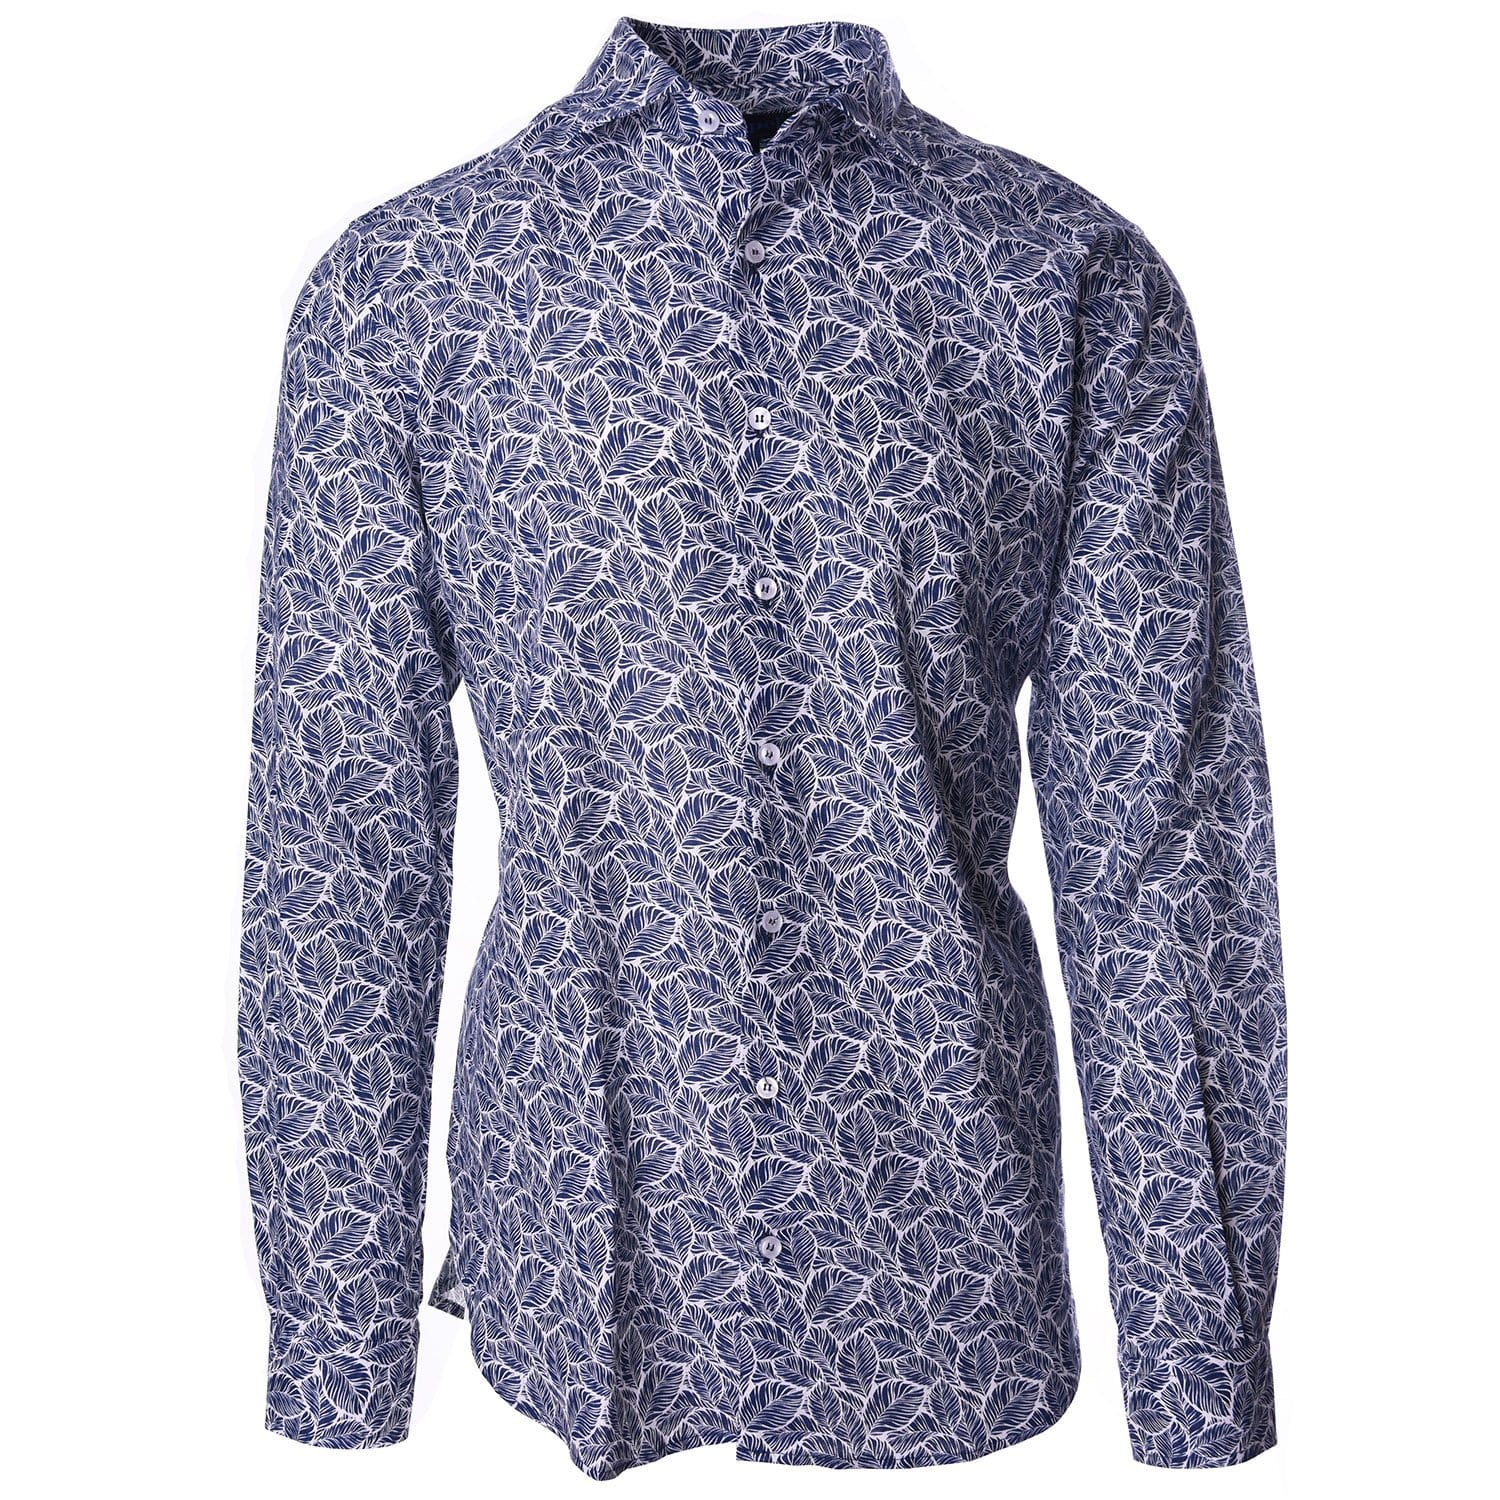 Erato Navy White Leaf Print - Haspel Clothing